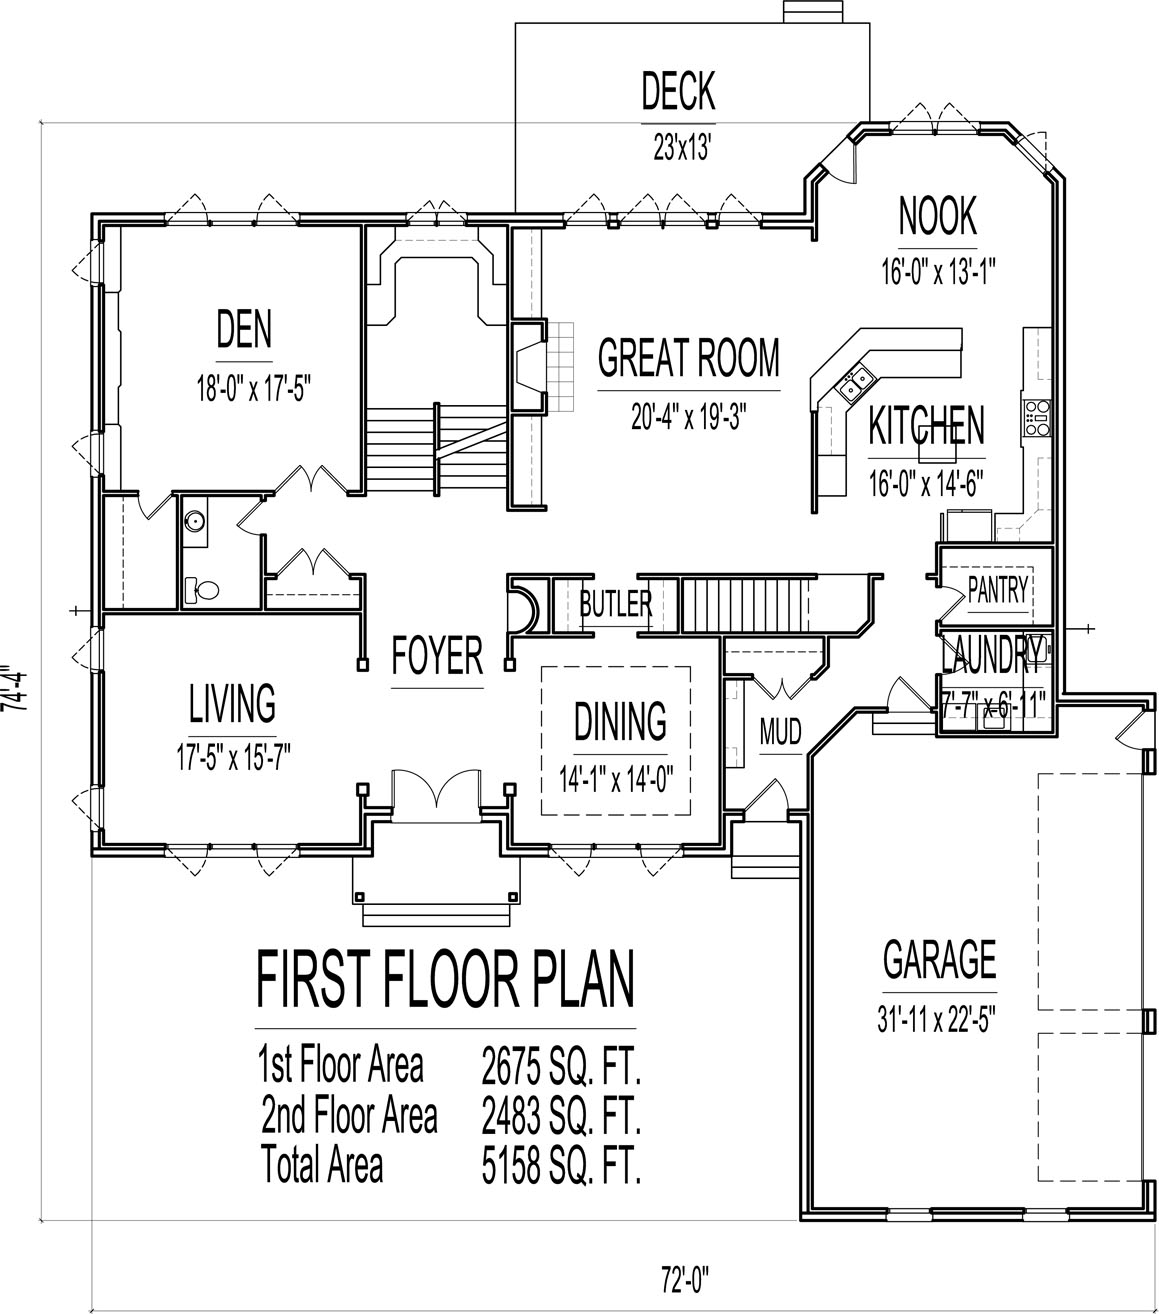 1500 Sq Ft House Plans 5000 Sq Ft House Floor Plans 1500 Sq Ft House 2 Story 5